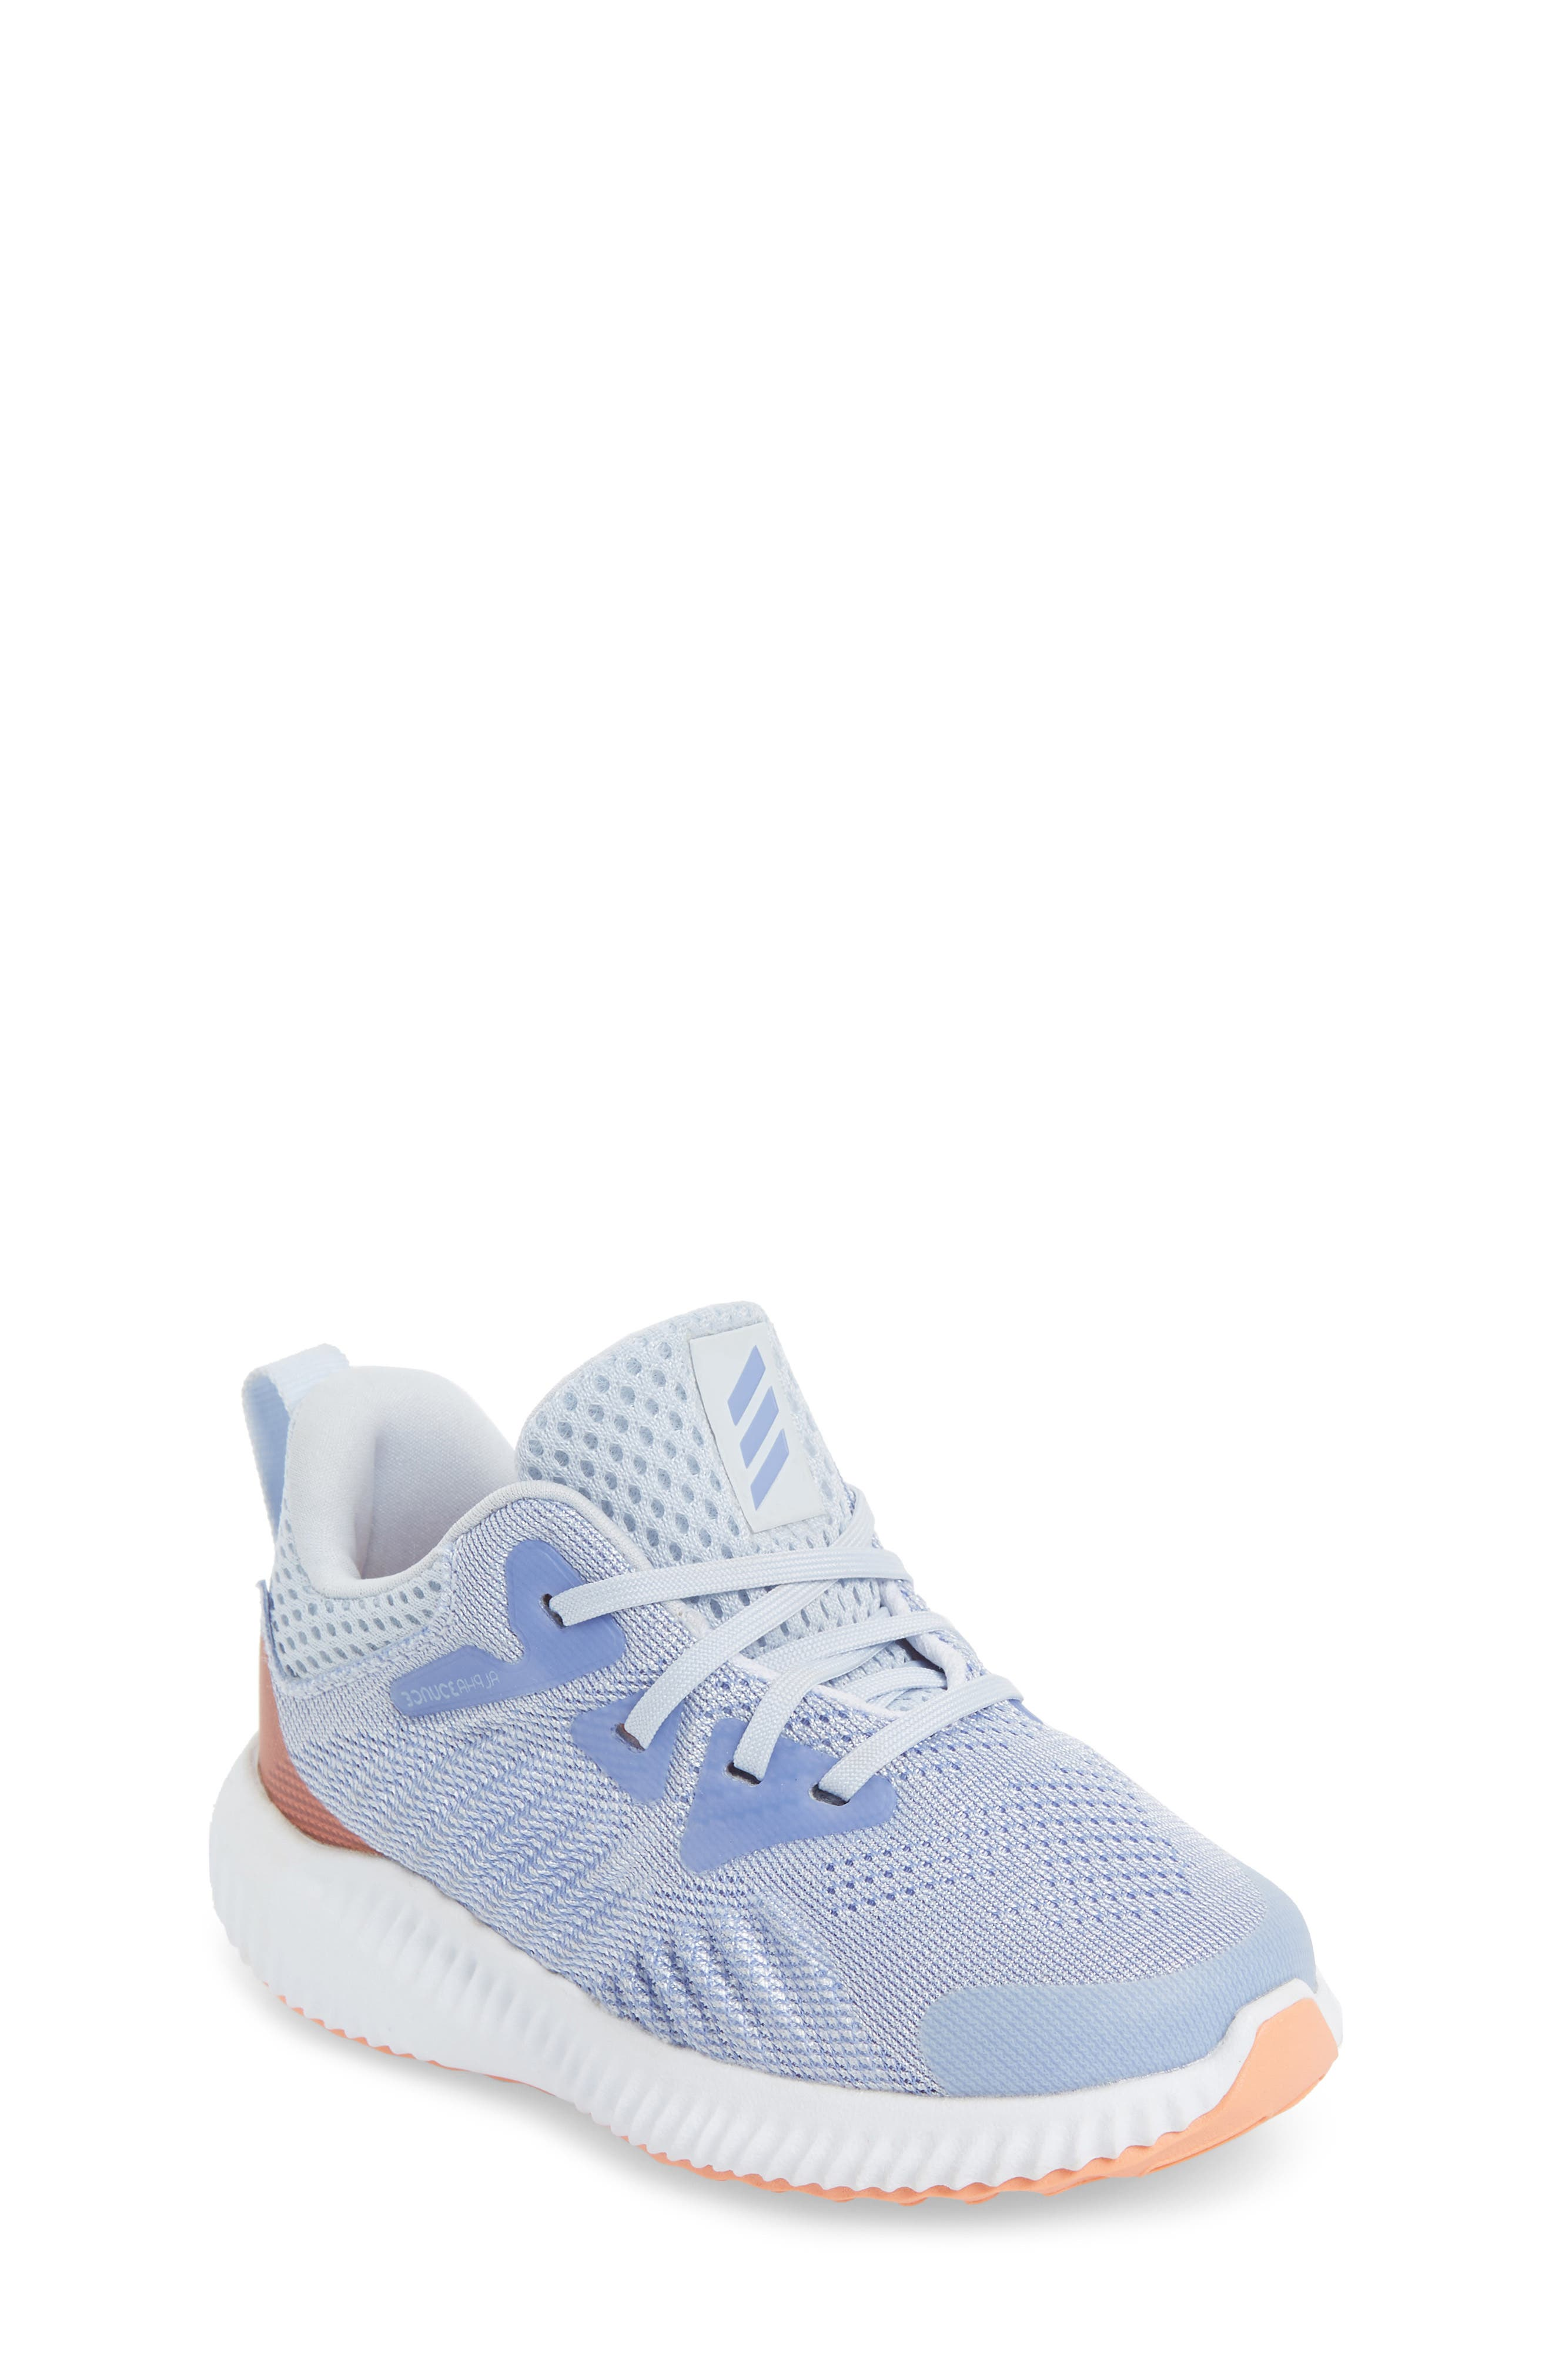 AlphaBounce Beyond Running Shoe,                         Main,                         color, Blue/ Chalk Purple/ White